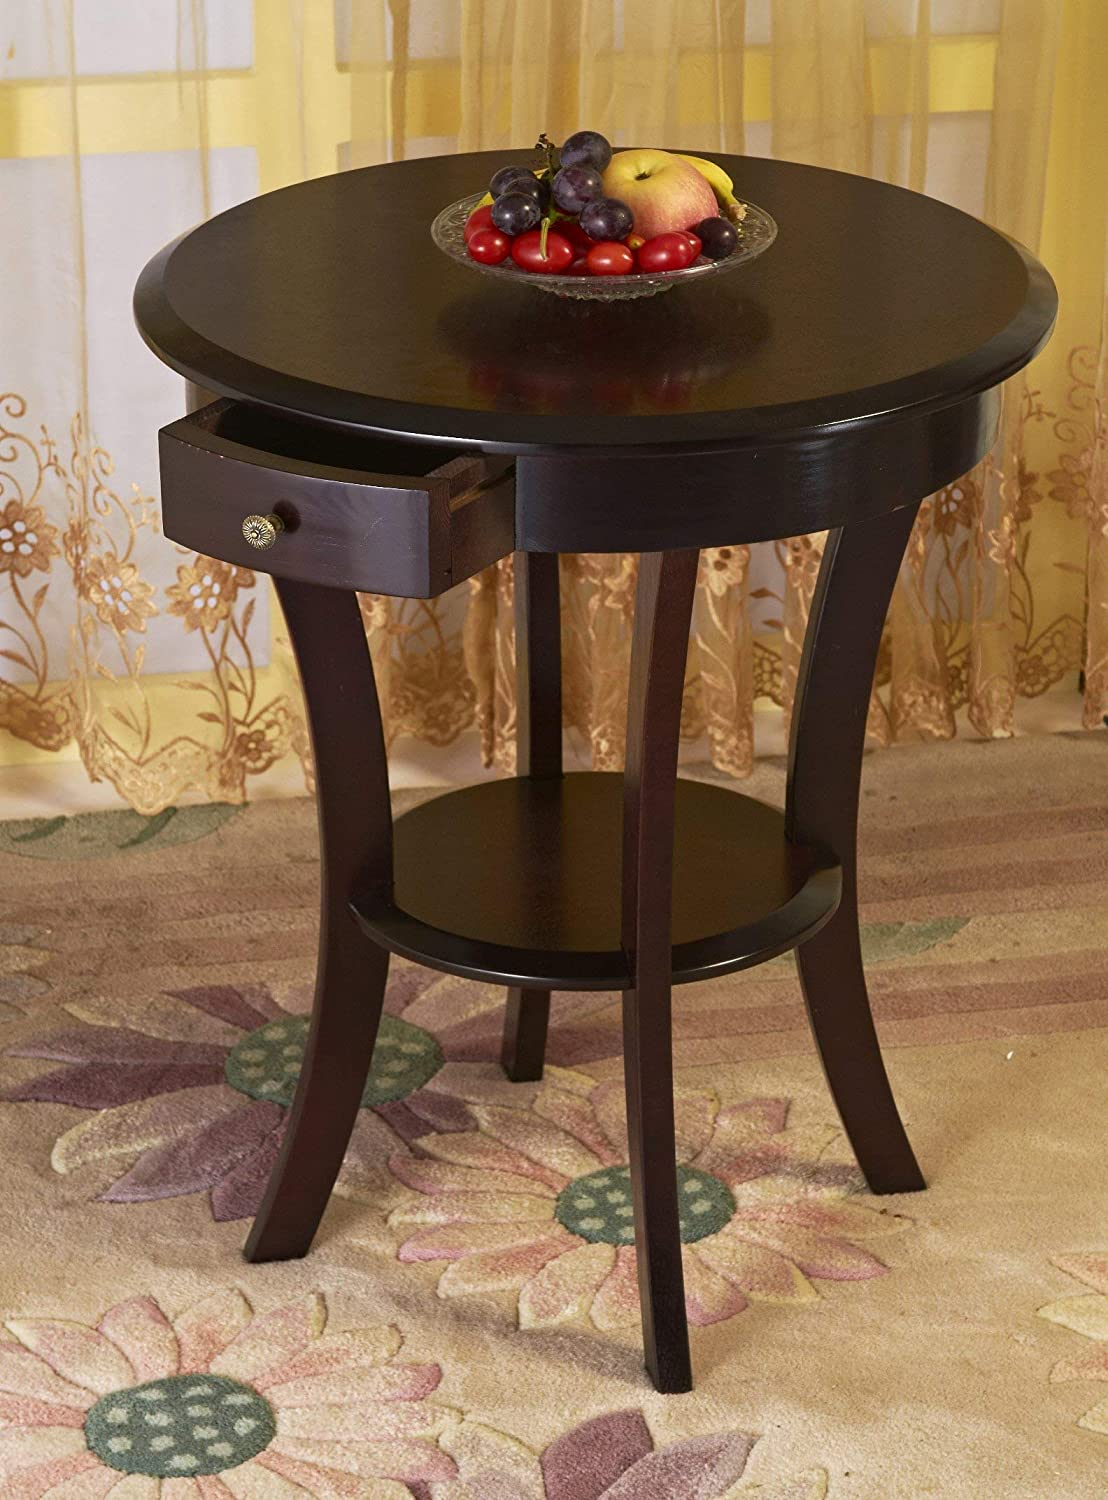 Wood Round Table with Drawer & Shelf